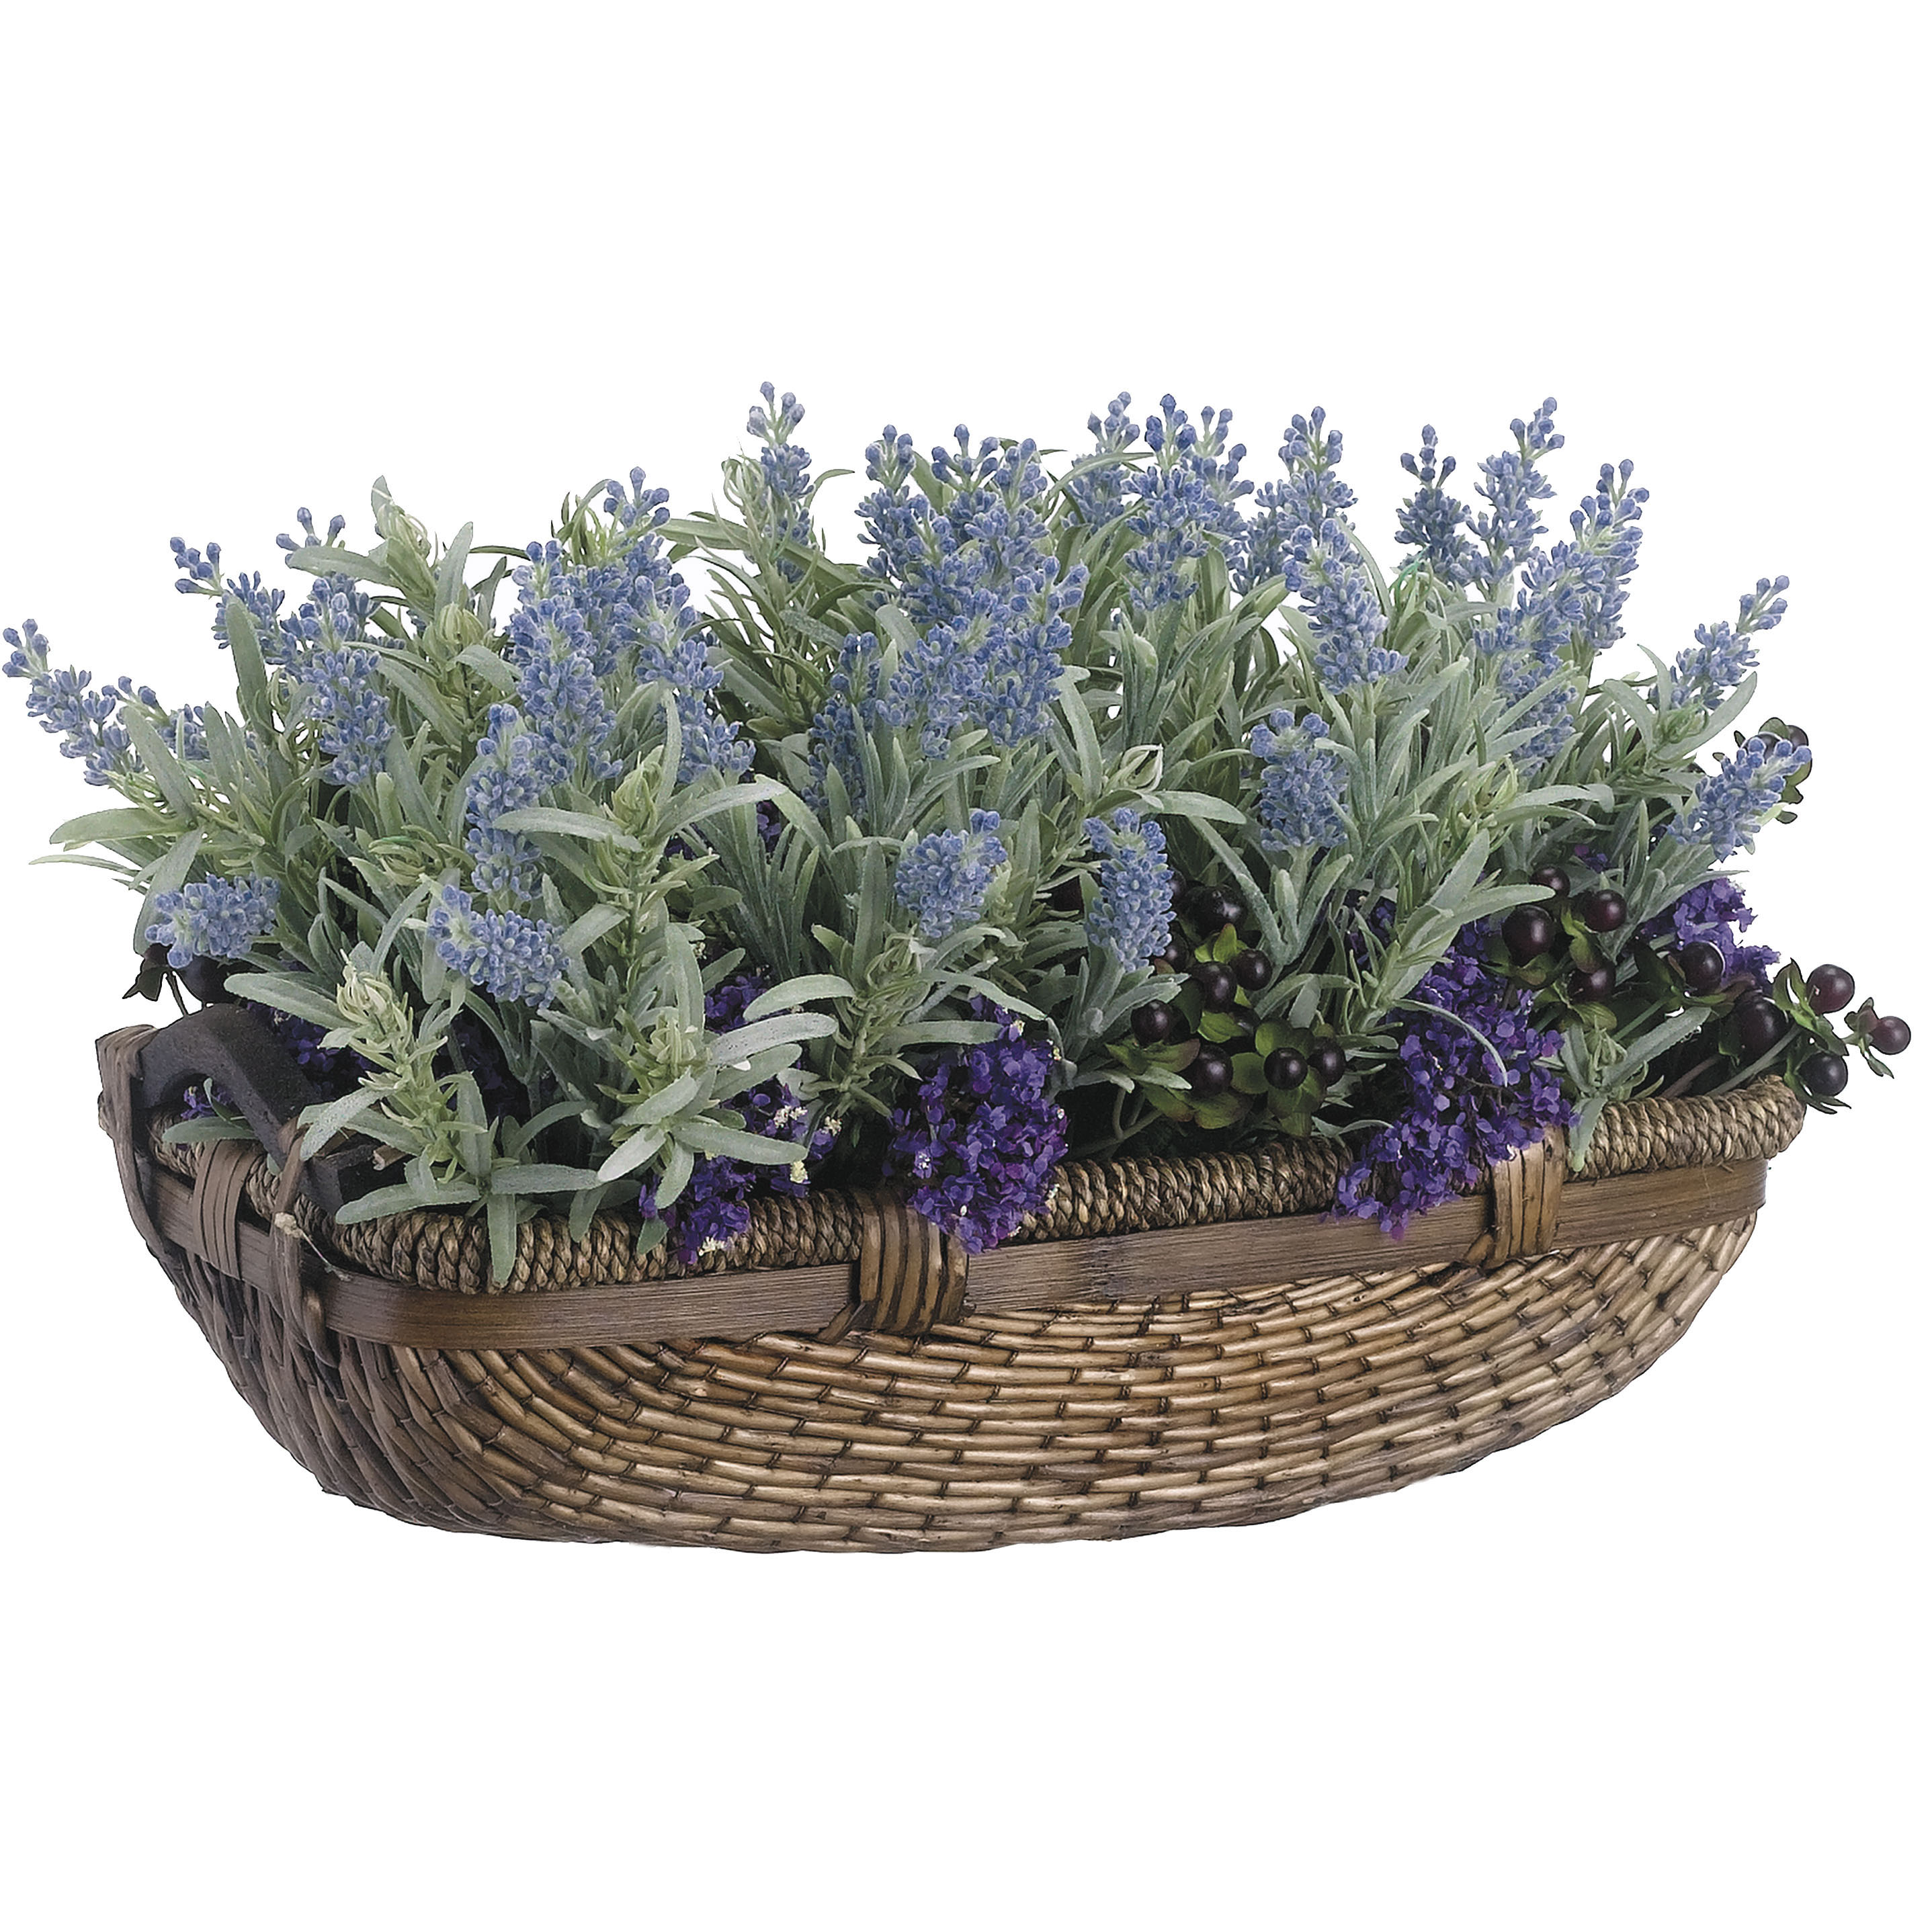 11 Inch Mixed Lavender & Rosemary Arrangement In Basket